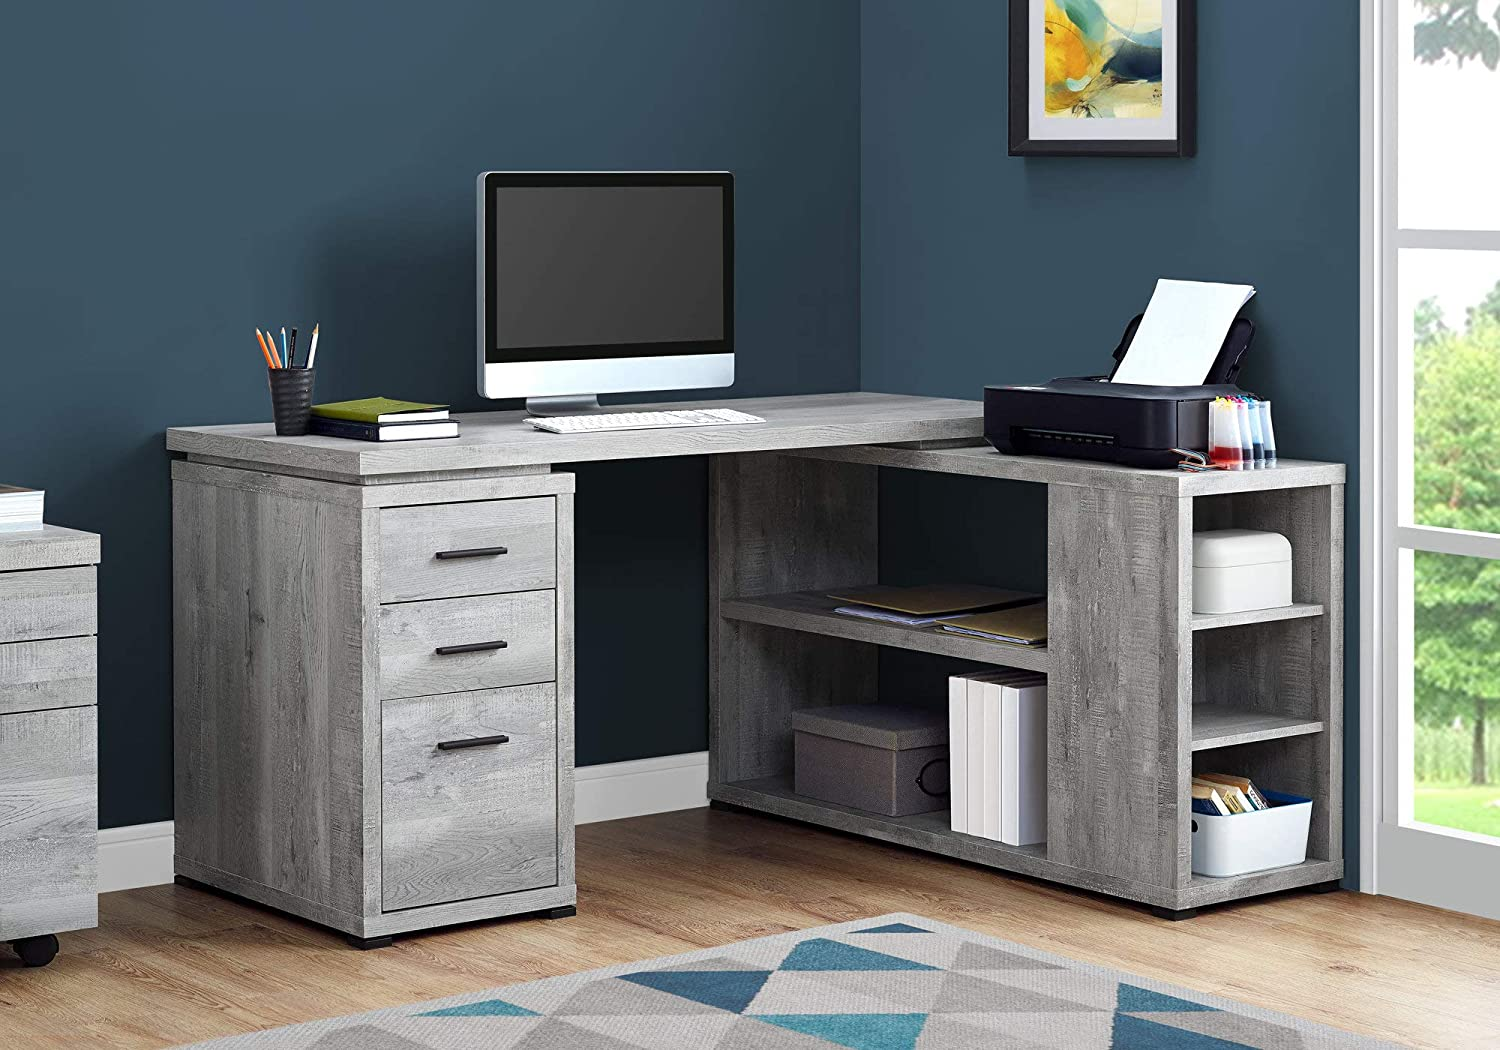 Monarch Specialties Computer Desk L-Shaped Corner Desk with storage – Left or Right Facing – 60 L Grey Reclaimed Wood Look